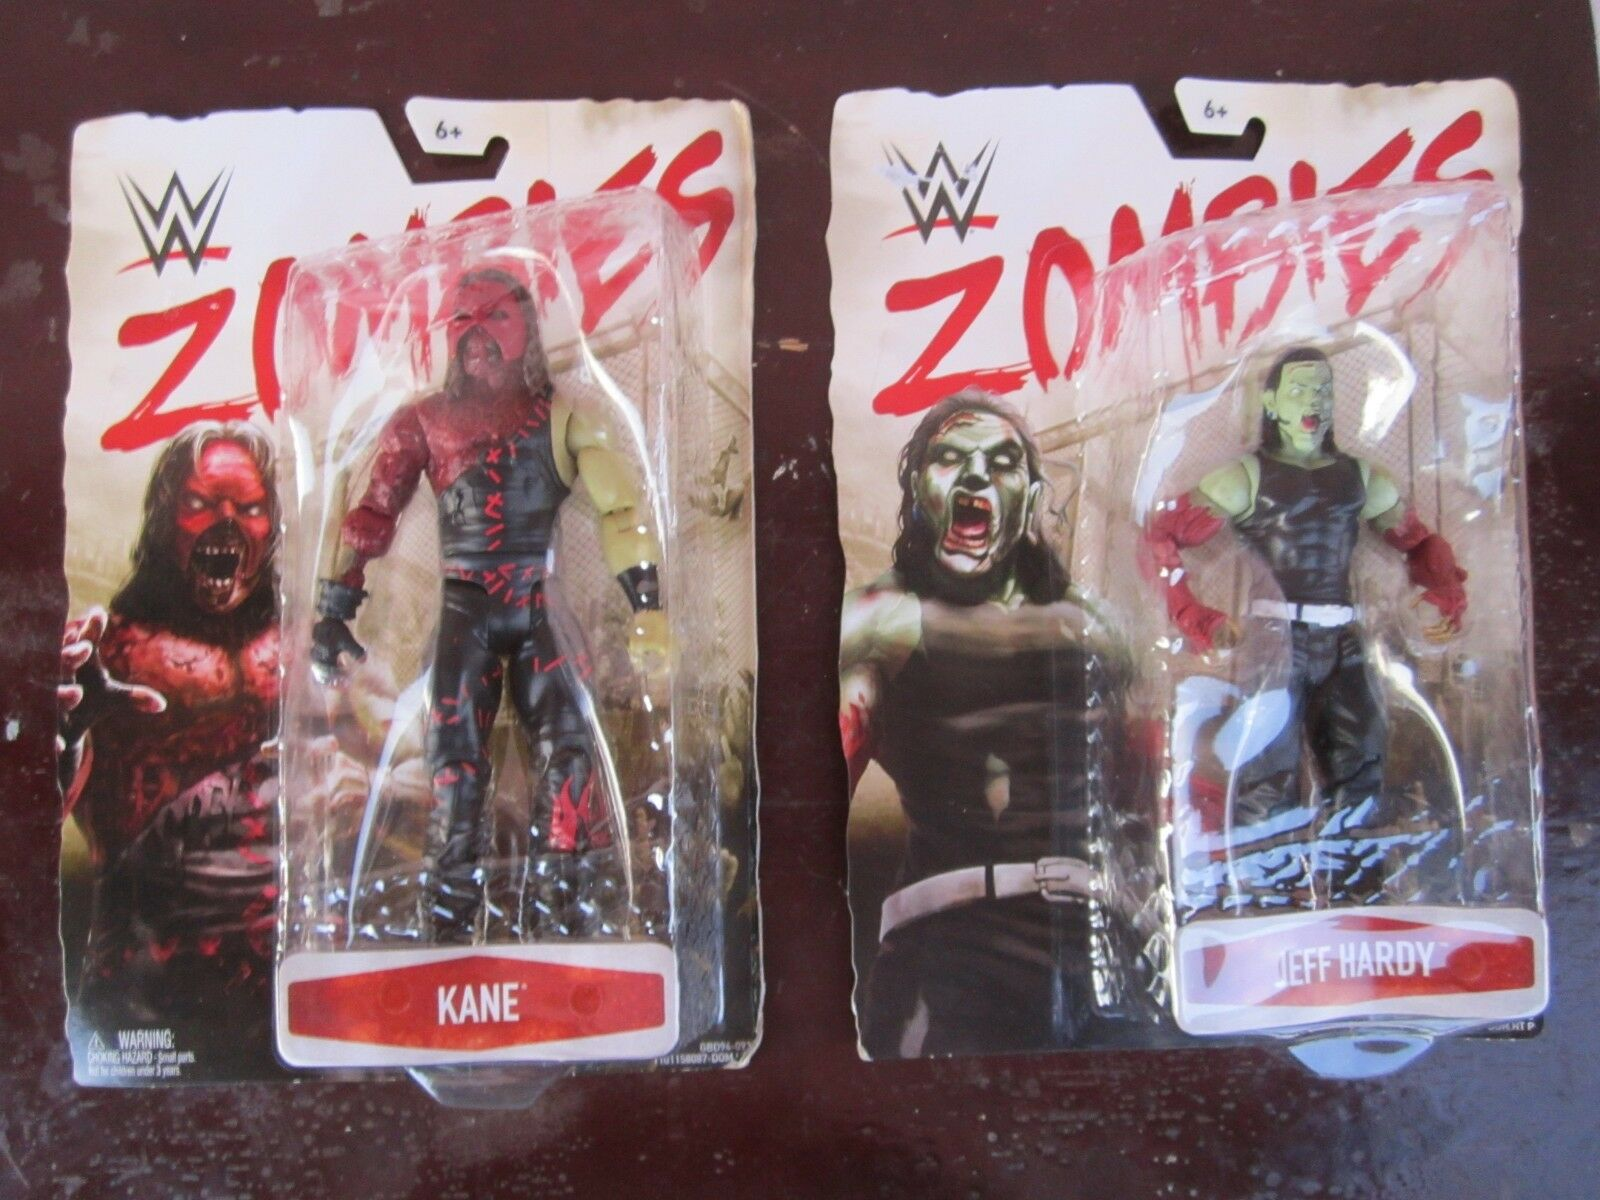 2 WWE Zombies  kane kane kane and Jeff Hardy  brand new action figures for sale    f8acb5